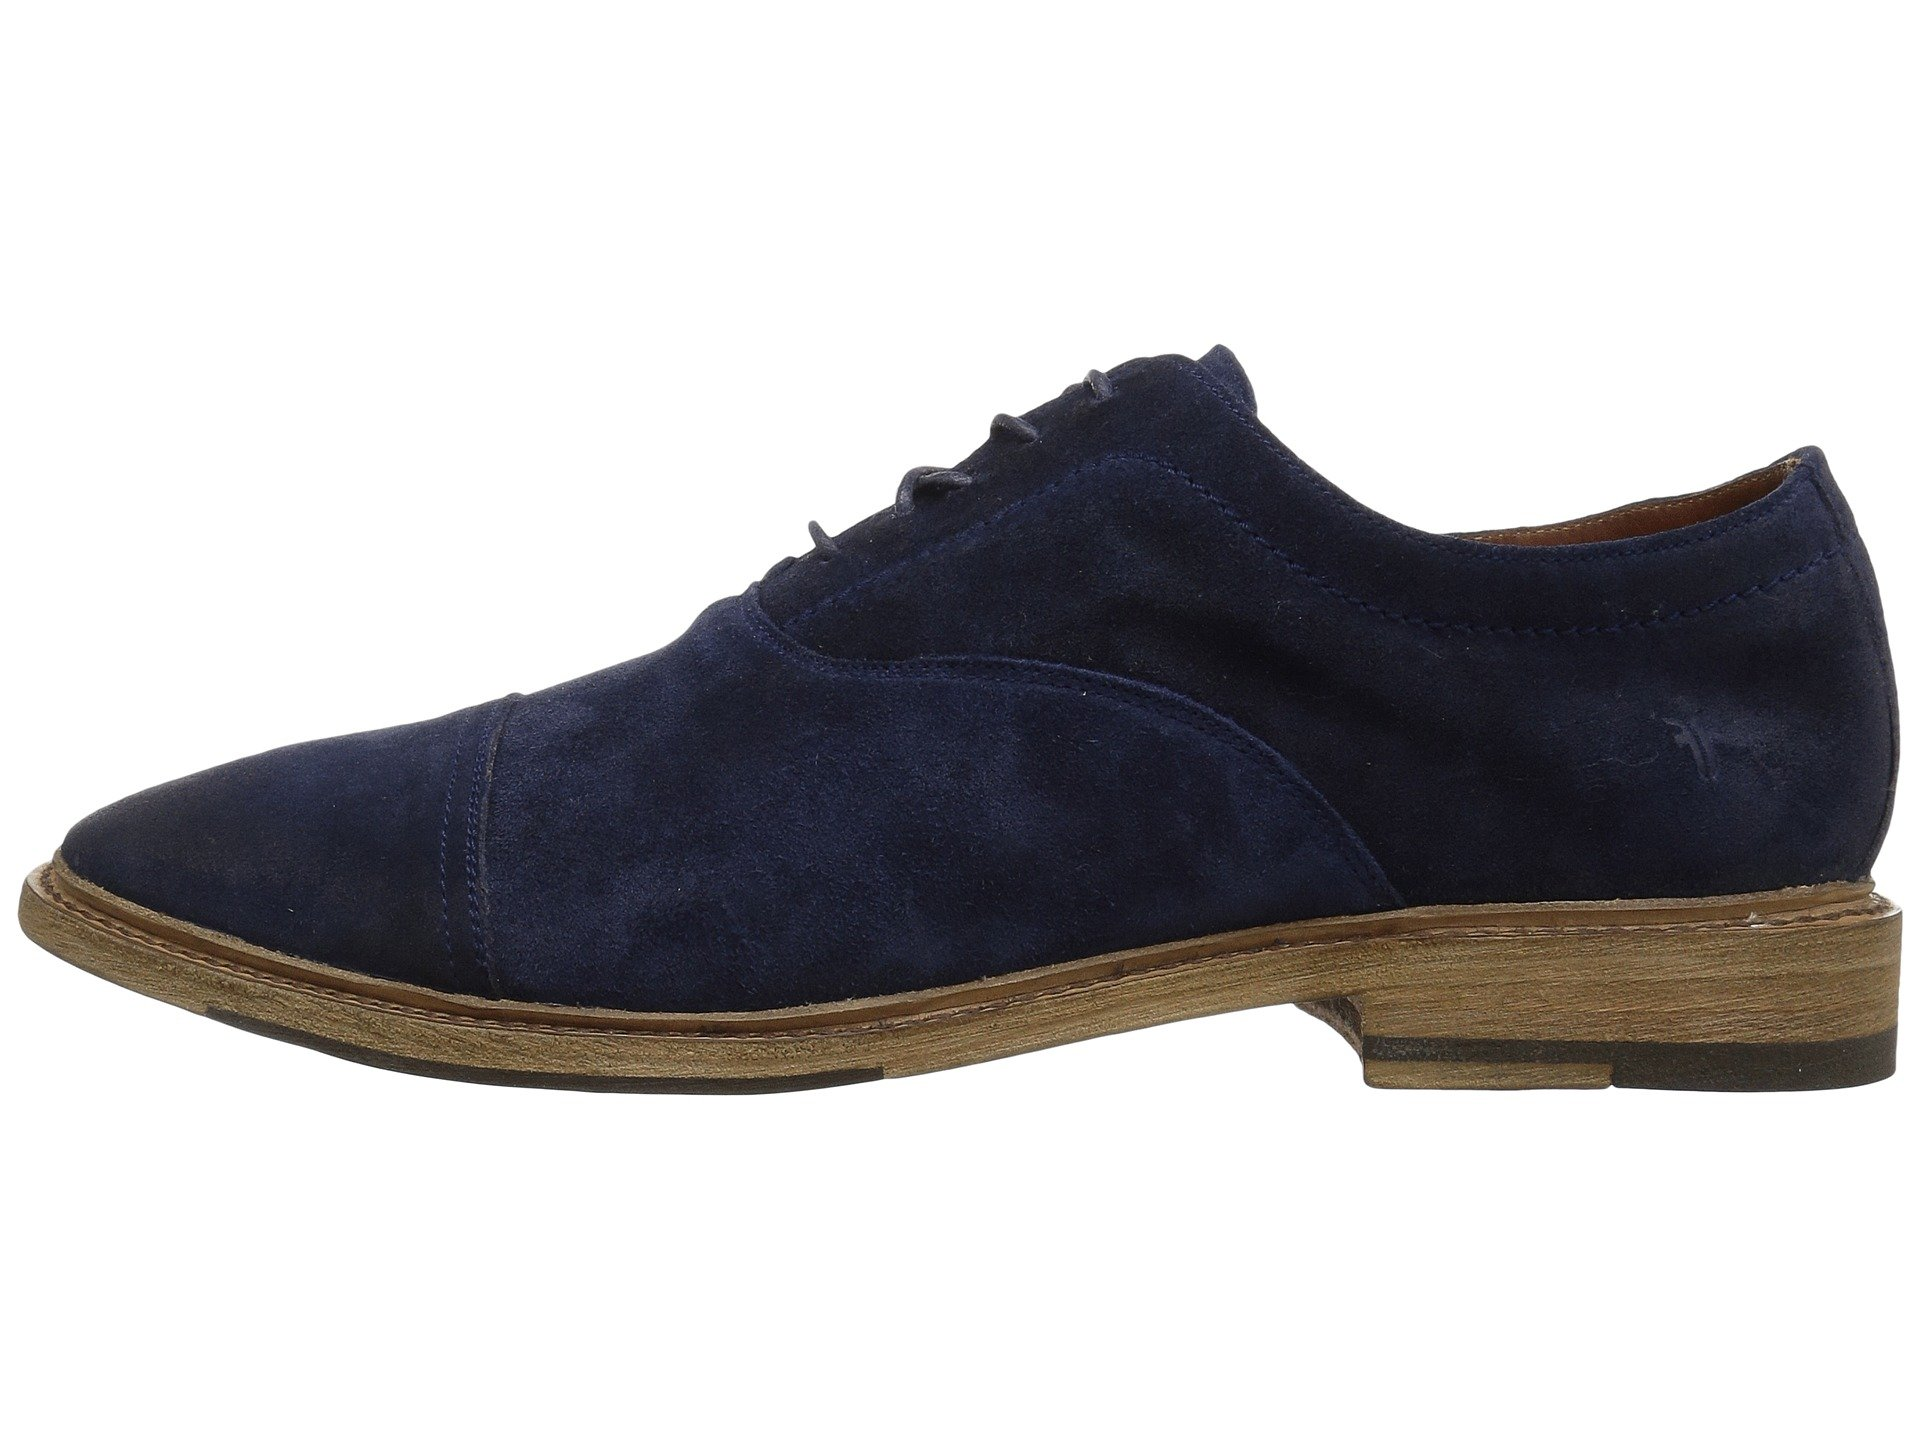 Frye Paul Bal Oxford At Zappos Com